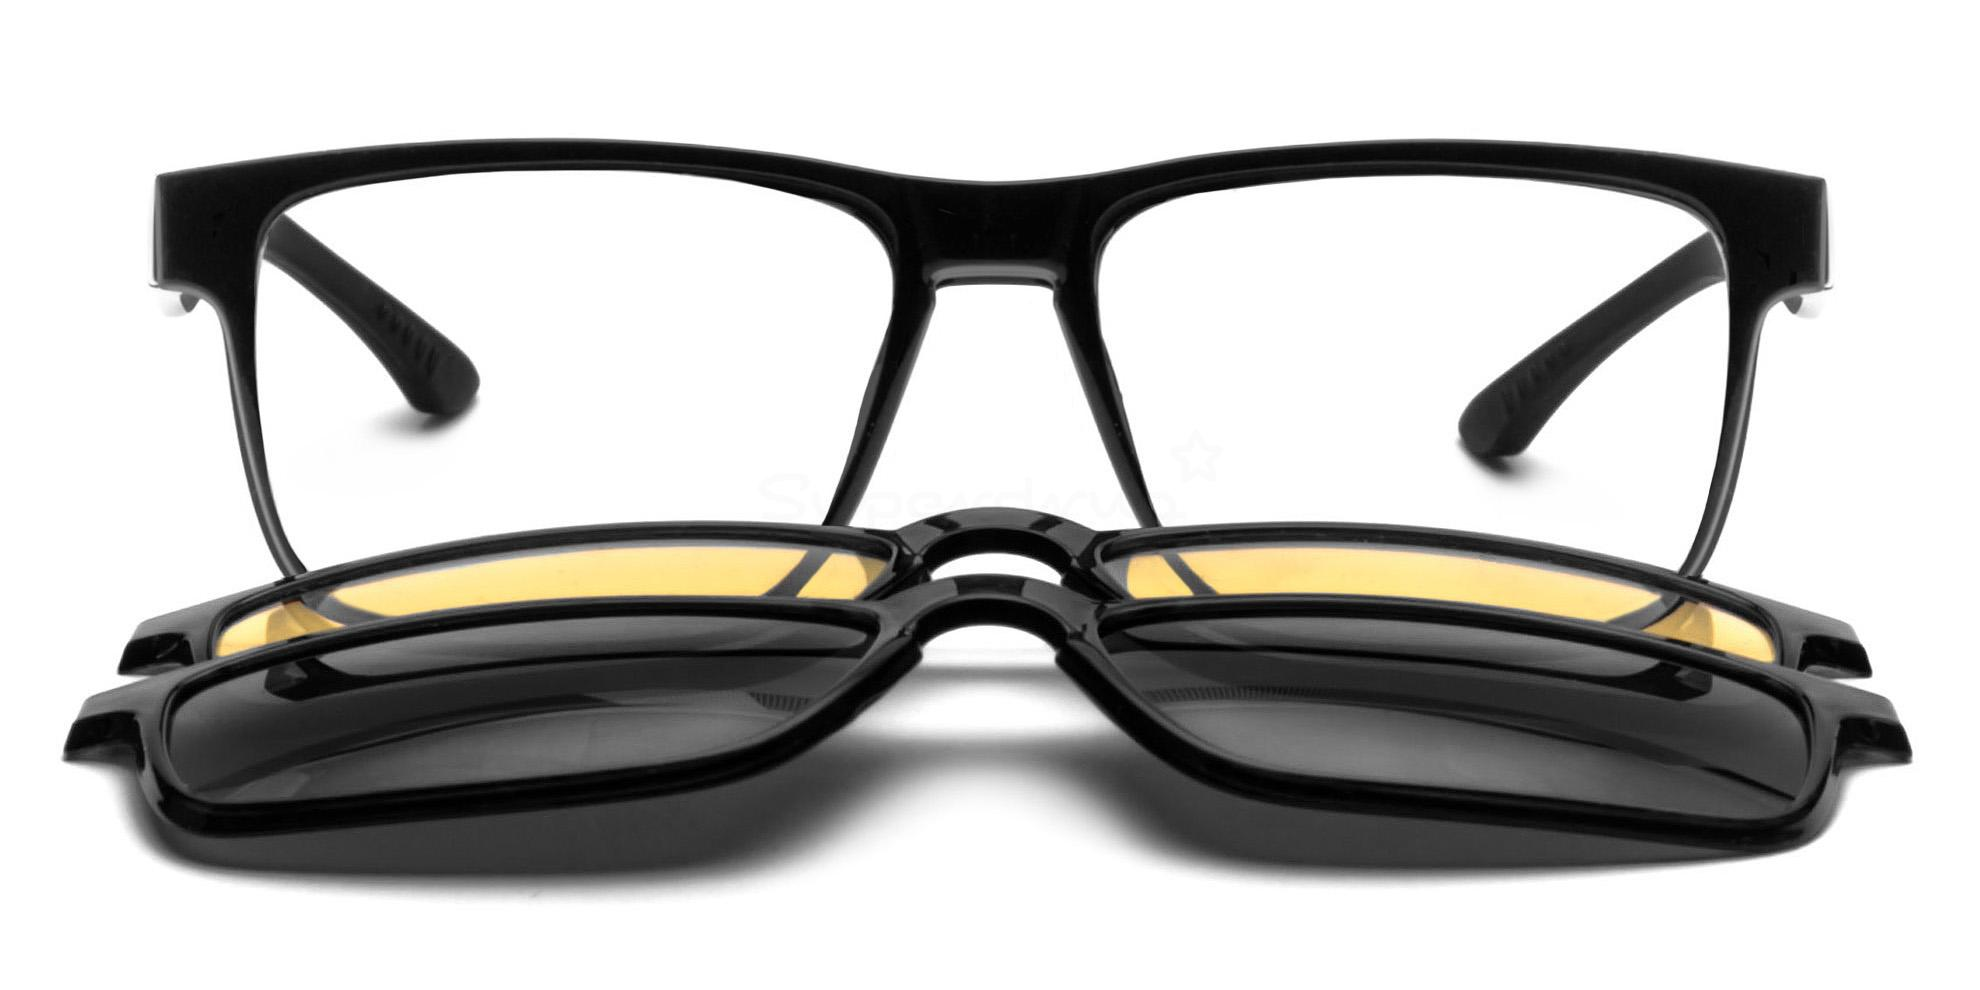 C1 5133 with 2X Magnetic, Polarised, Sunglasses Clip-on's Glasses, Neon